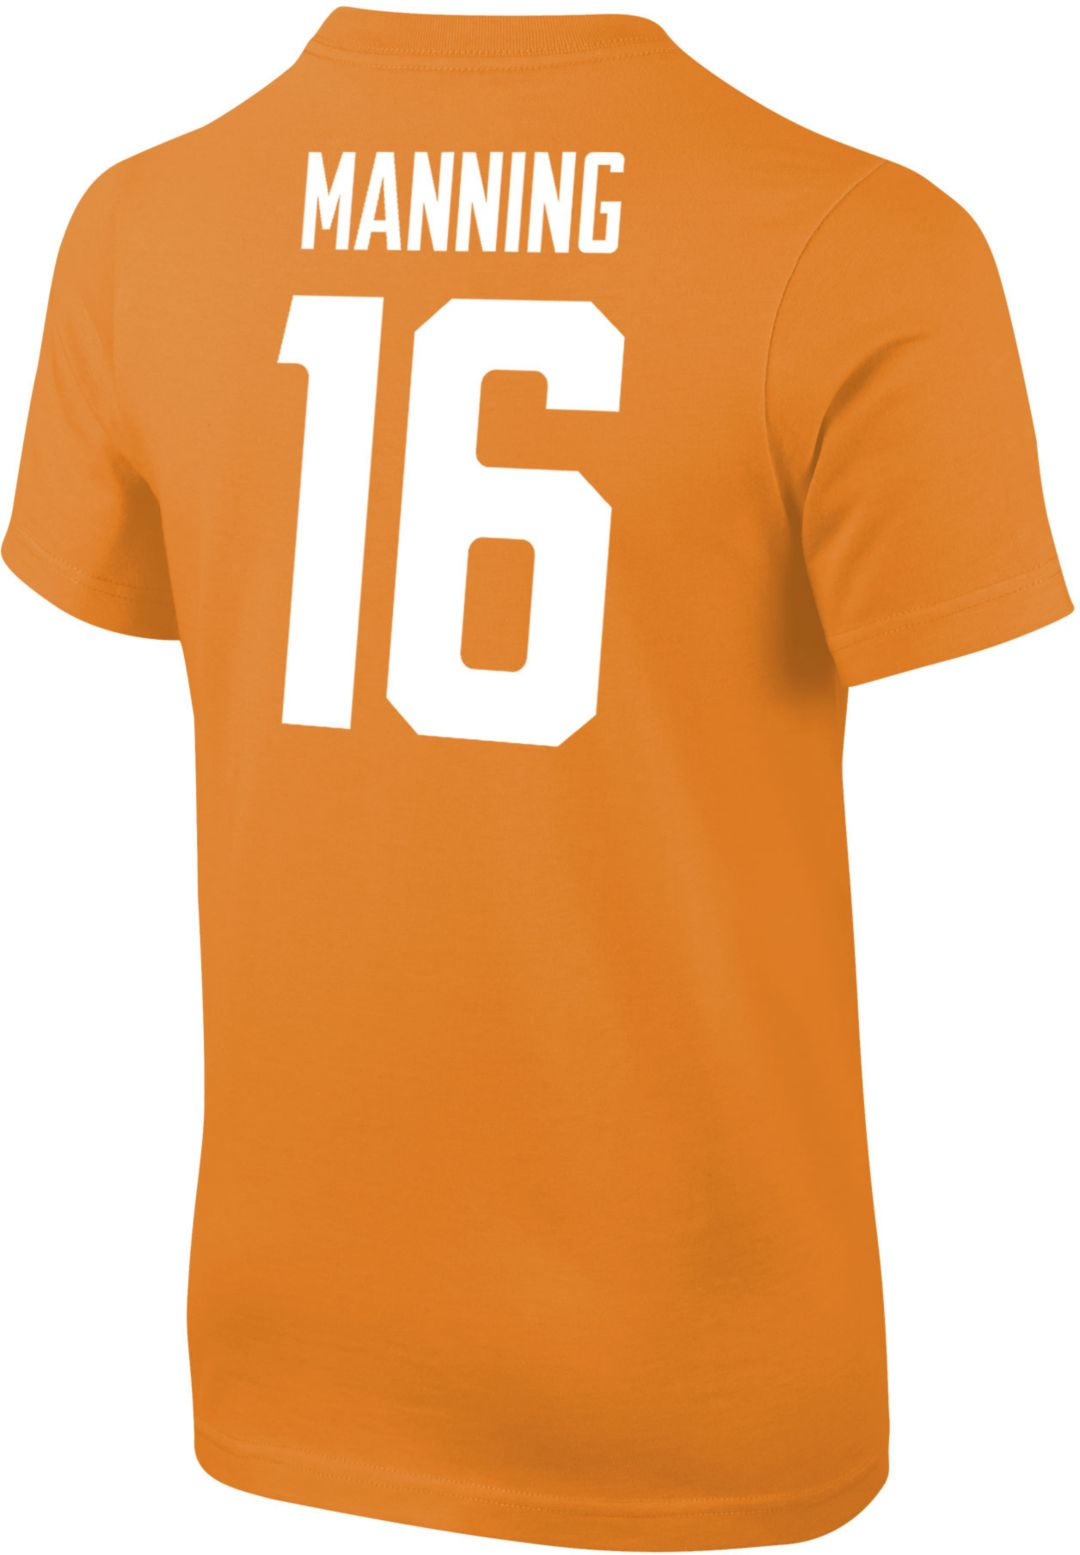 quality design 633d6 84bd0 Nike Youth Peyton Manning Tennessee Volunteers #16 Tennessee Orange Cotton  Football Jersey T-Shirt